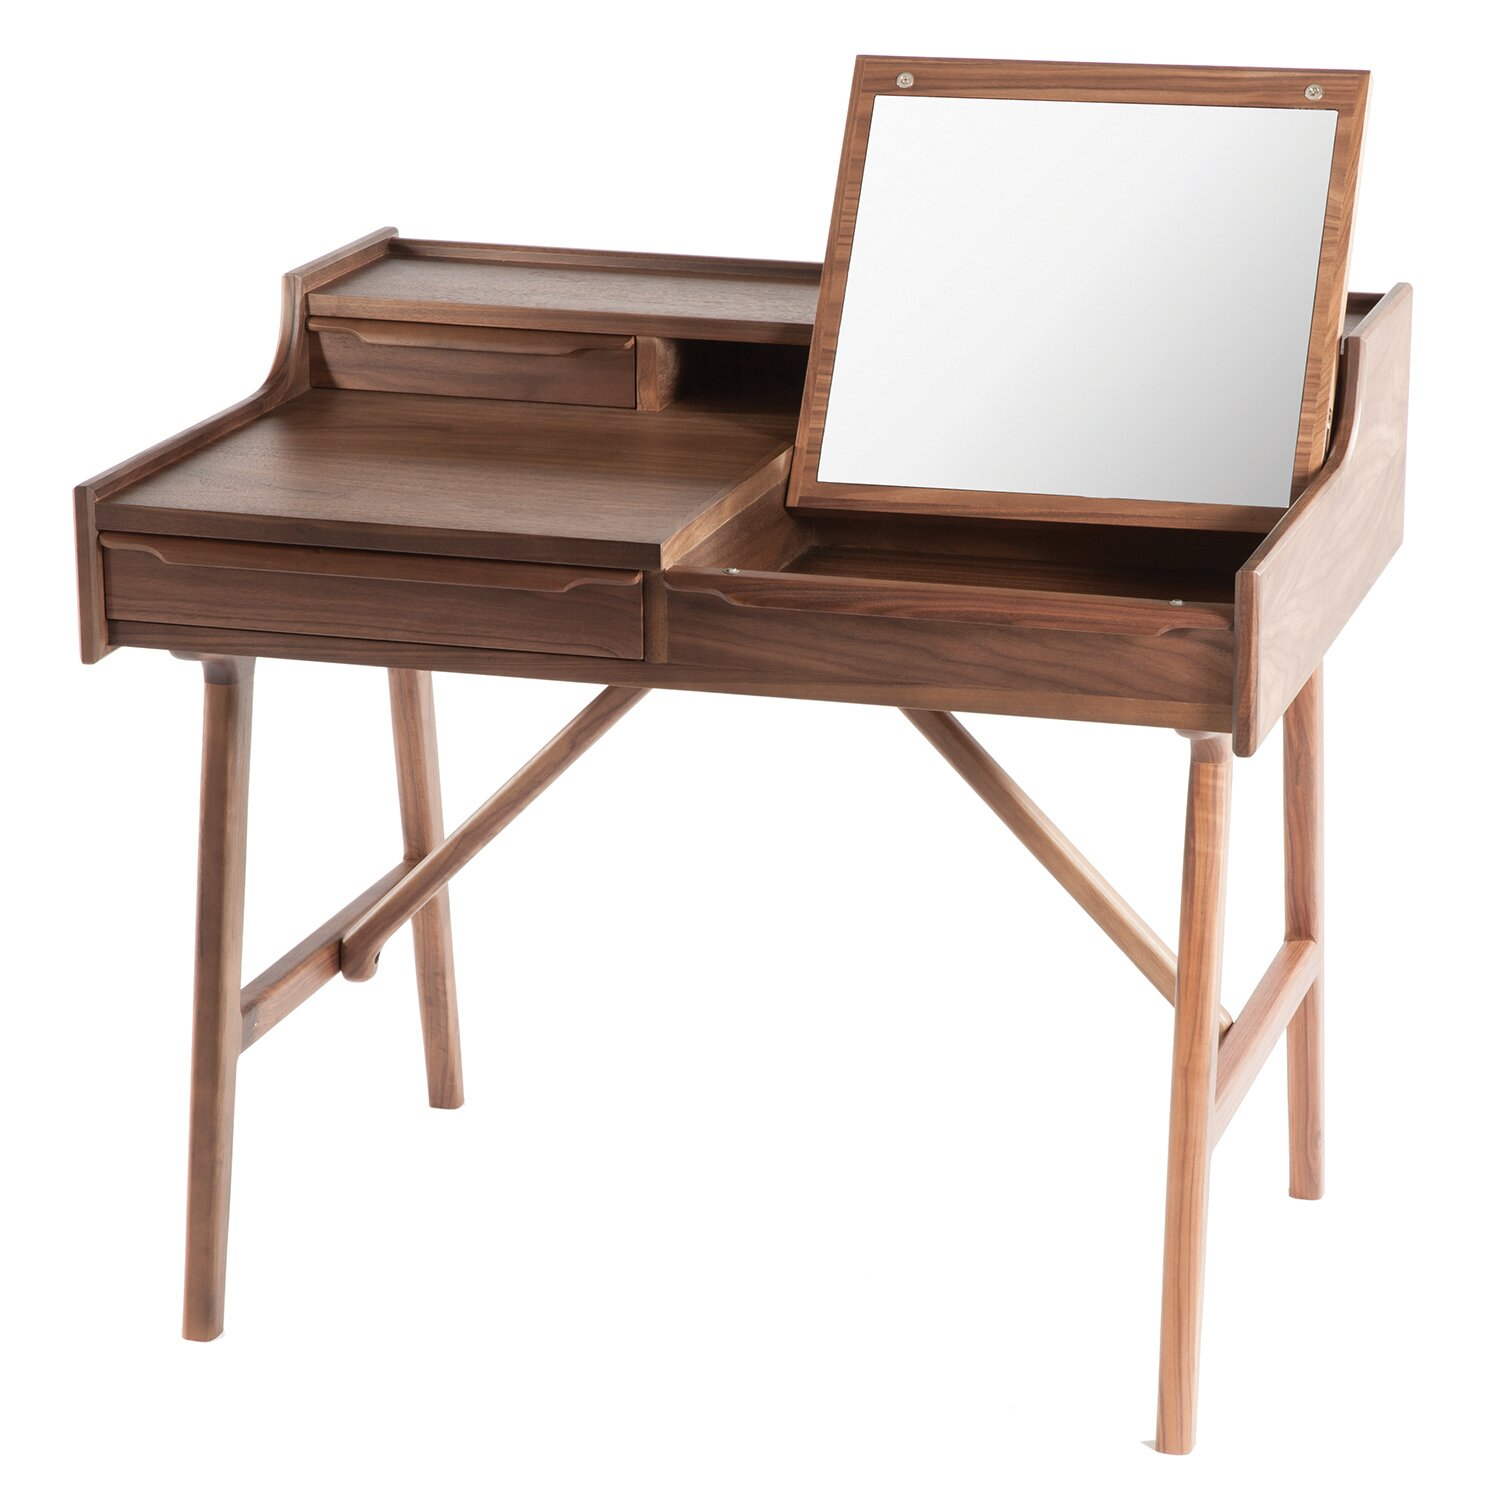 DCOR Design Vanity Desk With Mirror Wayfair